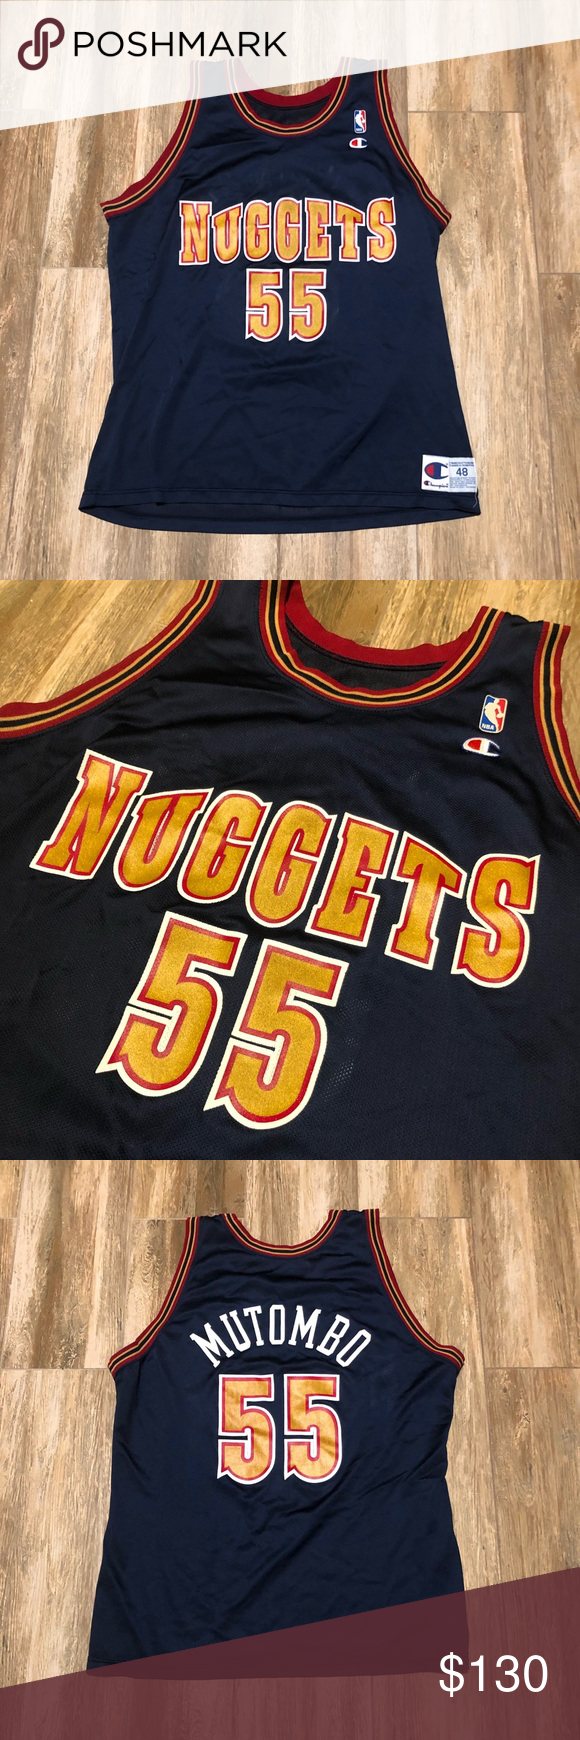 a95665e63e8 Vintage Dikembe Mutombo Nuggets Champion Jersey Vintage Dikembe Mutombo  Nuggets Champion Jersey Condition ~ 10/10 (flawless) NWOT Size ~ 48 (XL) # denver ...